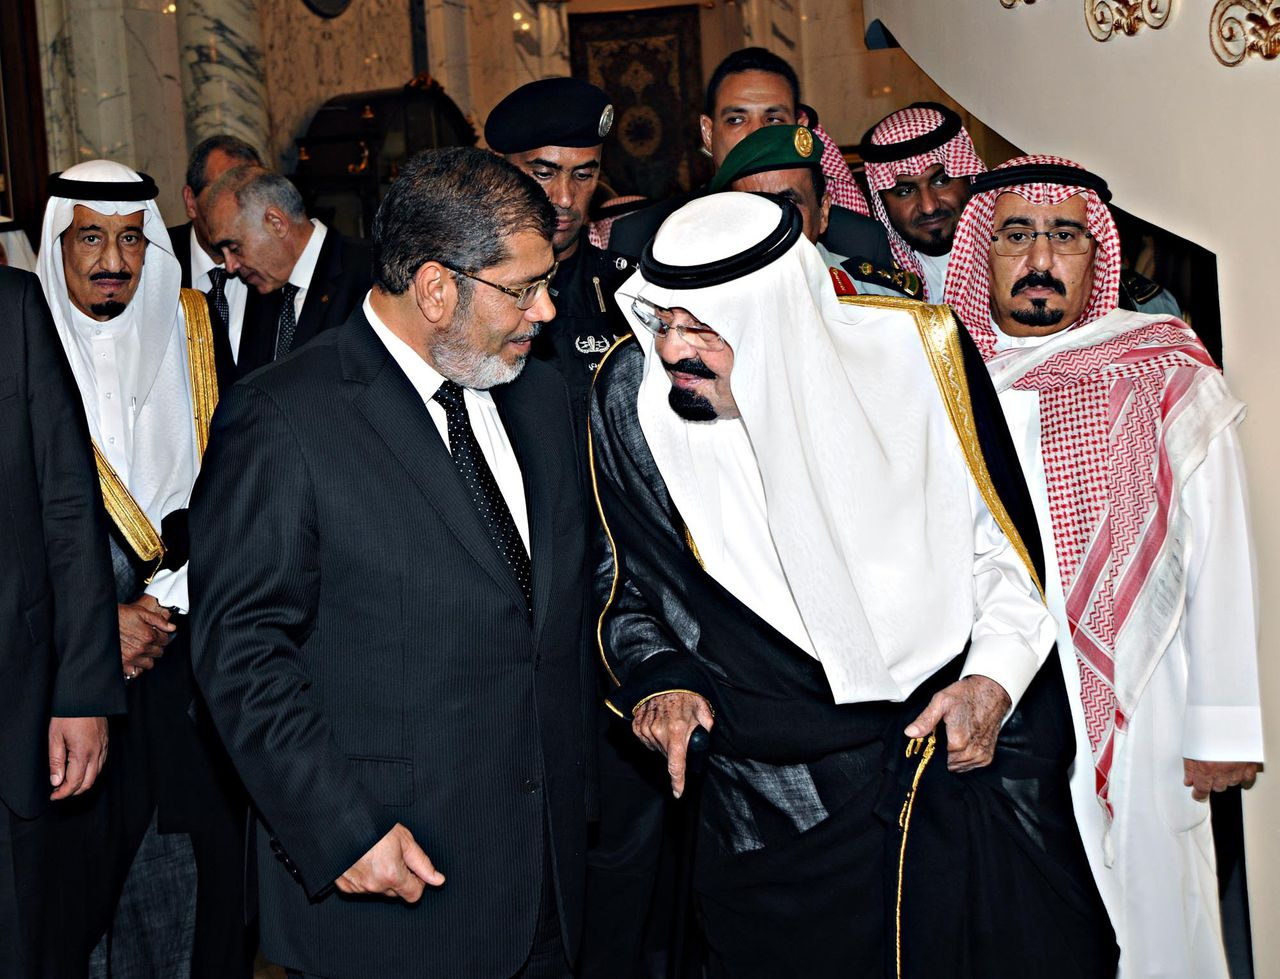 Saudi Arabia's King Abdullah (2nd R) speaks to Egypt's President Mohamed Mursi on his arrival at the Royal Palace in Jeddah airport July 11, 2012. REUTERS/Saudi Press Agency/Handout (SAUDI ARABIA - Tags: POLITICS ROYALS) FOR EDITORIAL USE ONLY. NOT FOR SALE FOR MARKETING OR ADVERTISING CAMPAIGNS. THIS IMAGE HAS BEEN SUPPLIED BY A THIRD PARTY. IT IS DISTRIBUTED, EXACTLY AS RECEIVED BY REUTERS, AS A SERVICE TO CLIENTS